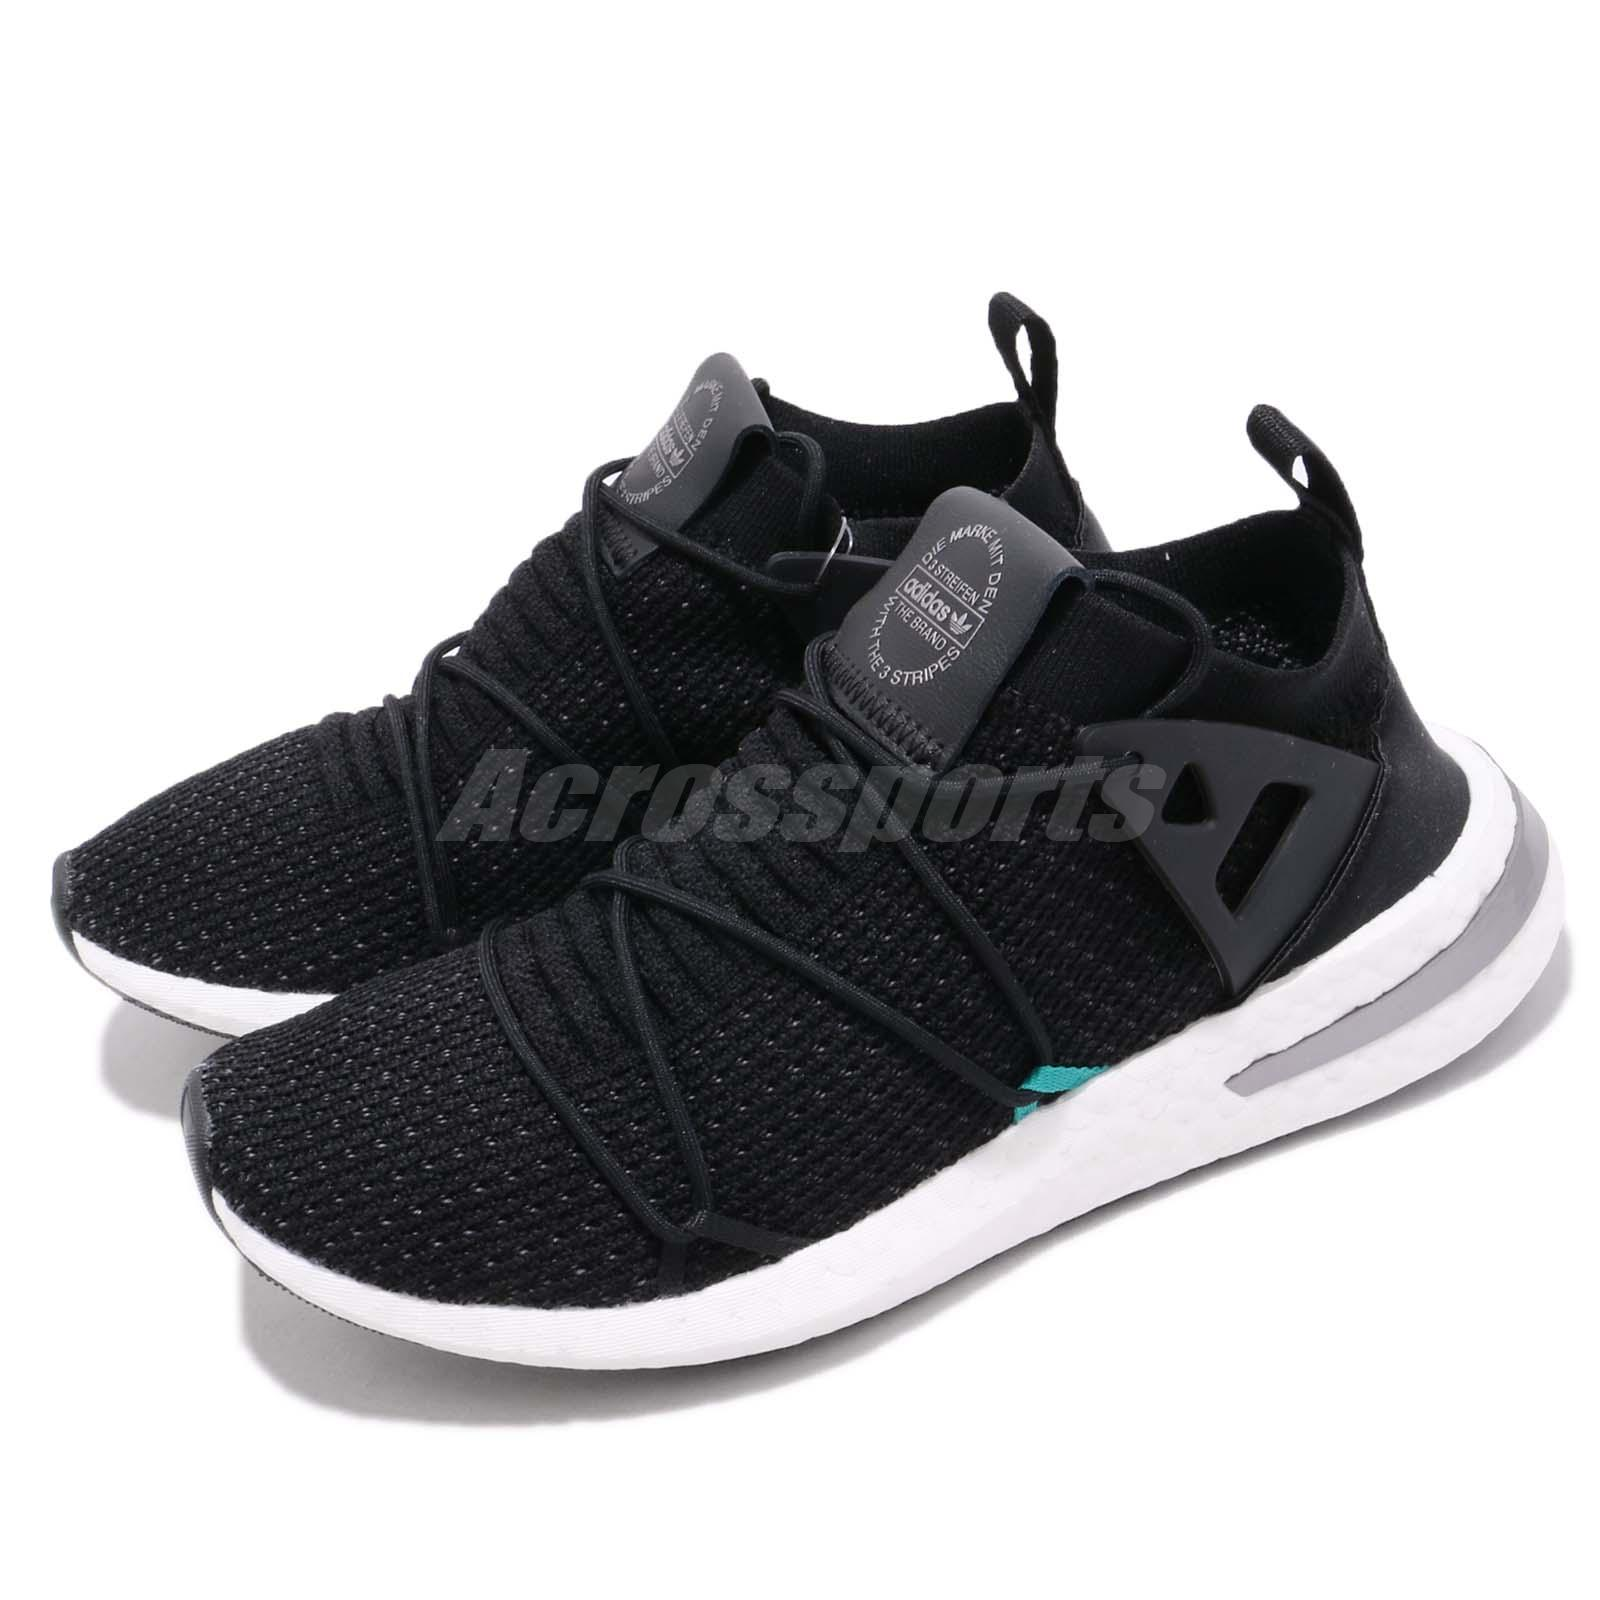 72e30eb61dc Details about adidas Originals ARKYN PK Primeknit Boost Black Silver Men  Running Shoes B28123